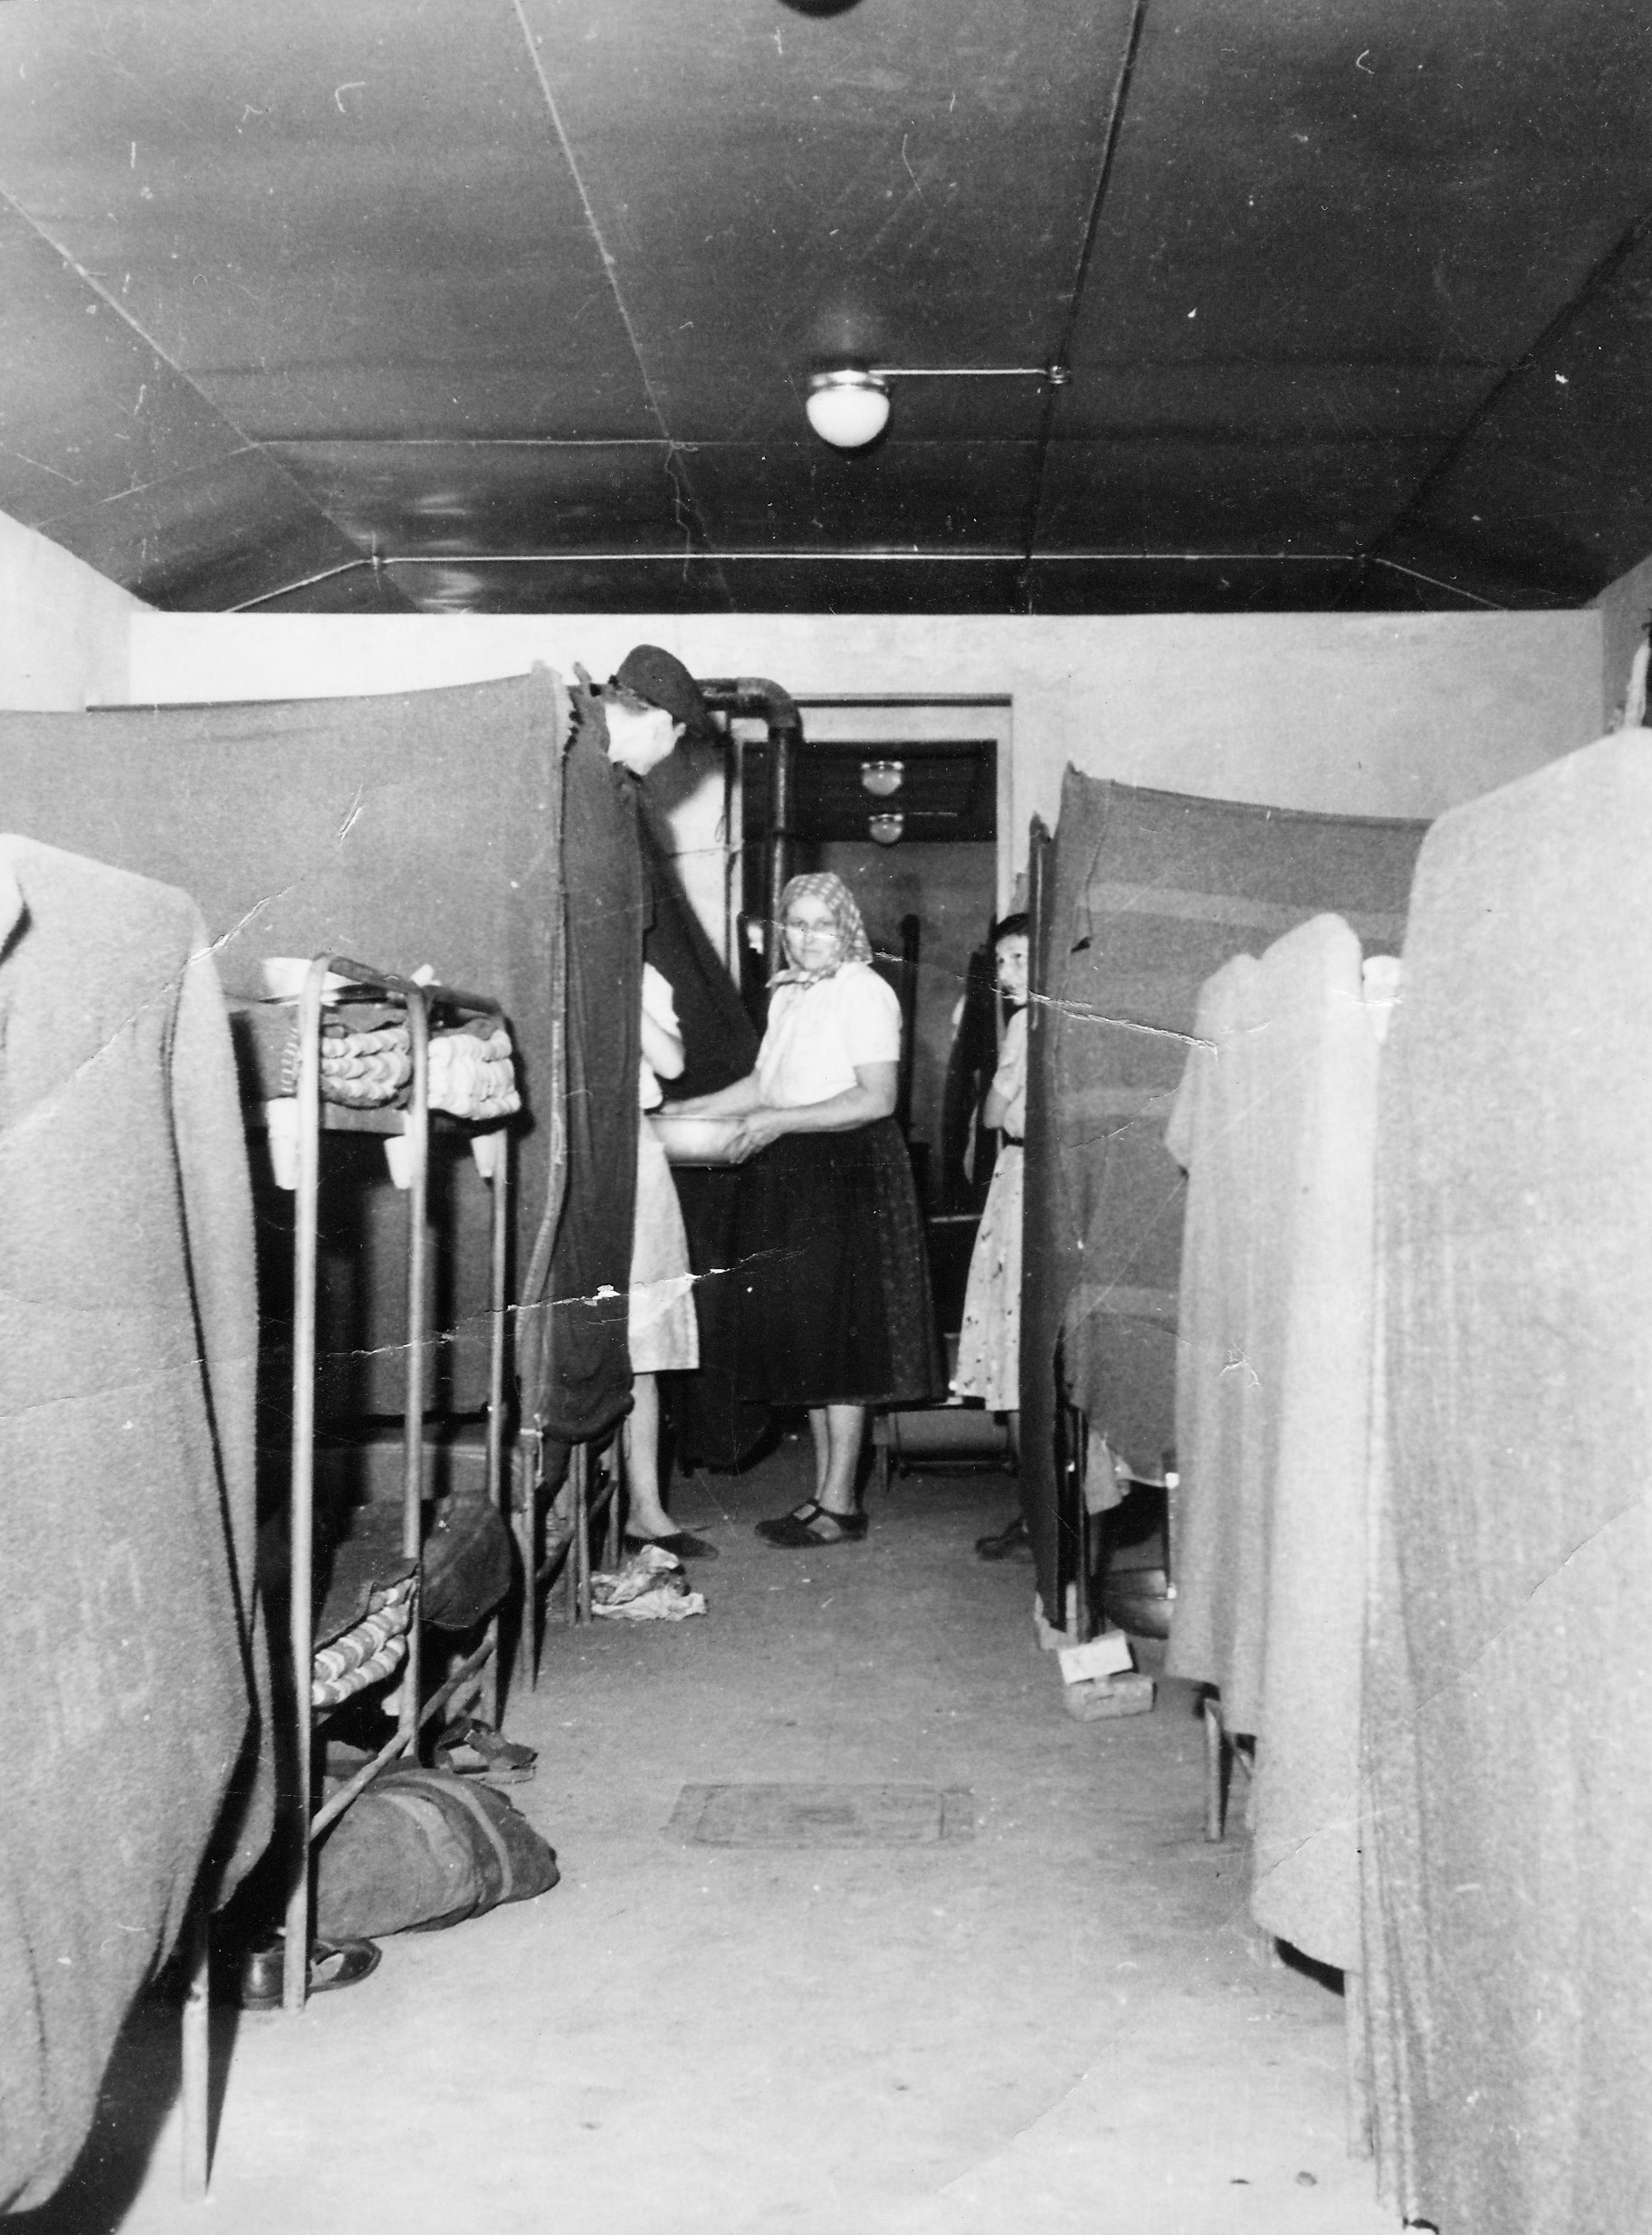 Opincina camp, new barracks, blankets around beds for privacy 1950-51